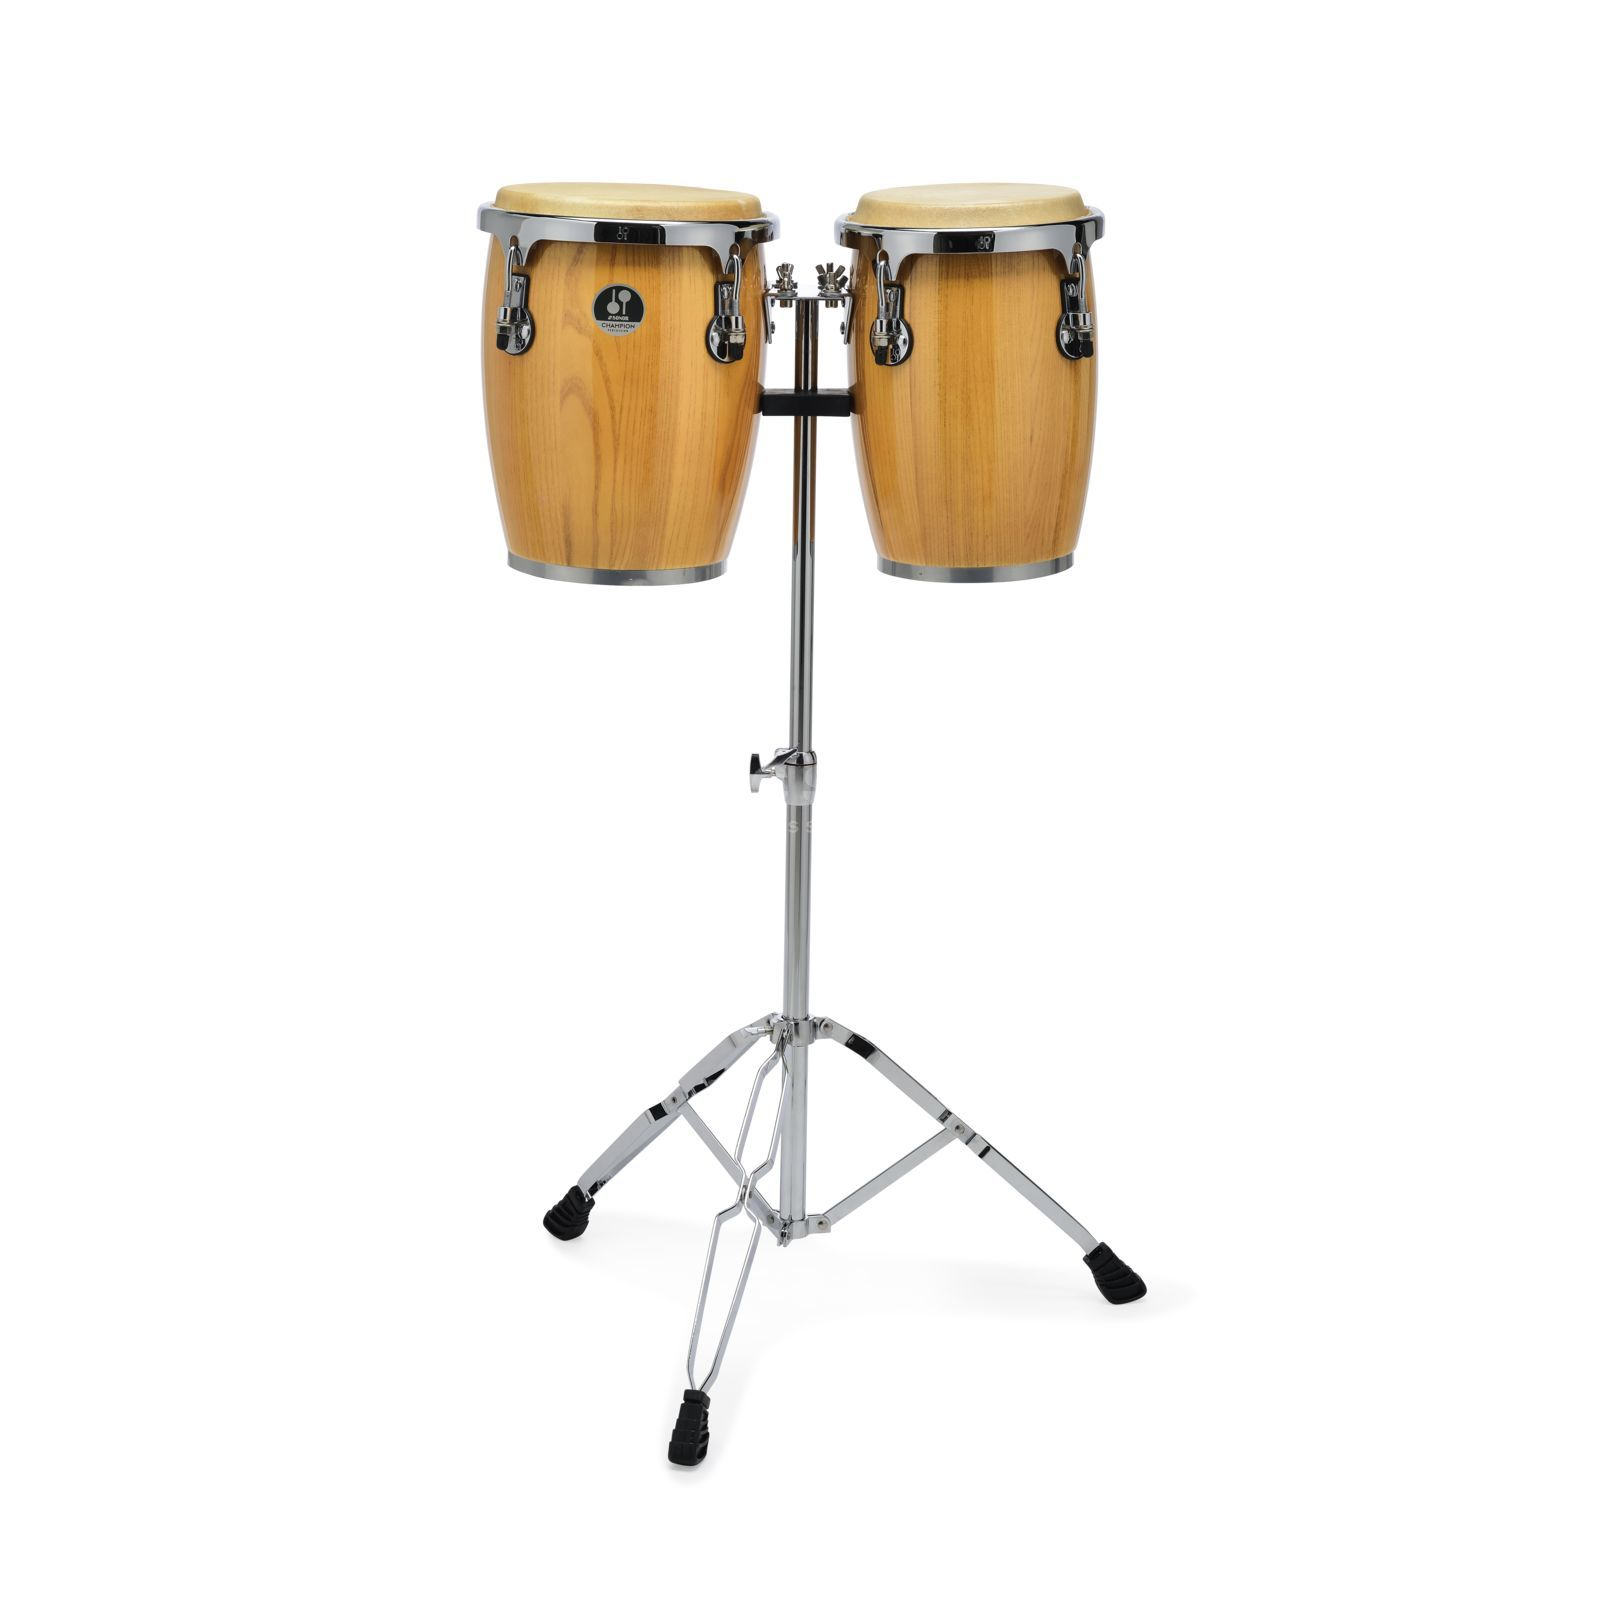 "Sonor Champion Mini Conga Set CMC0910NHG, 9"" & 10"" Natural Produktbild"